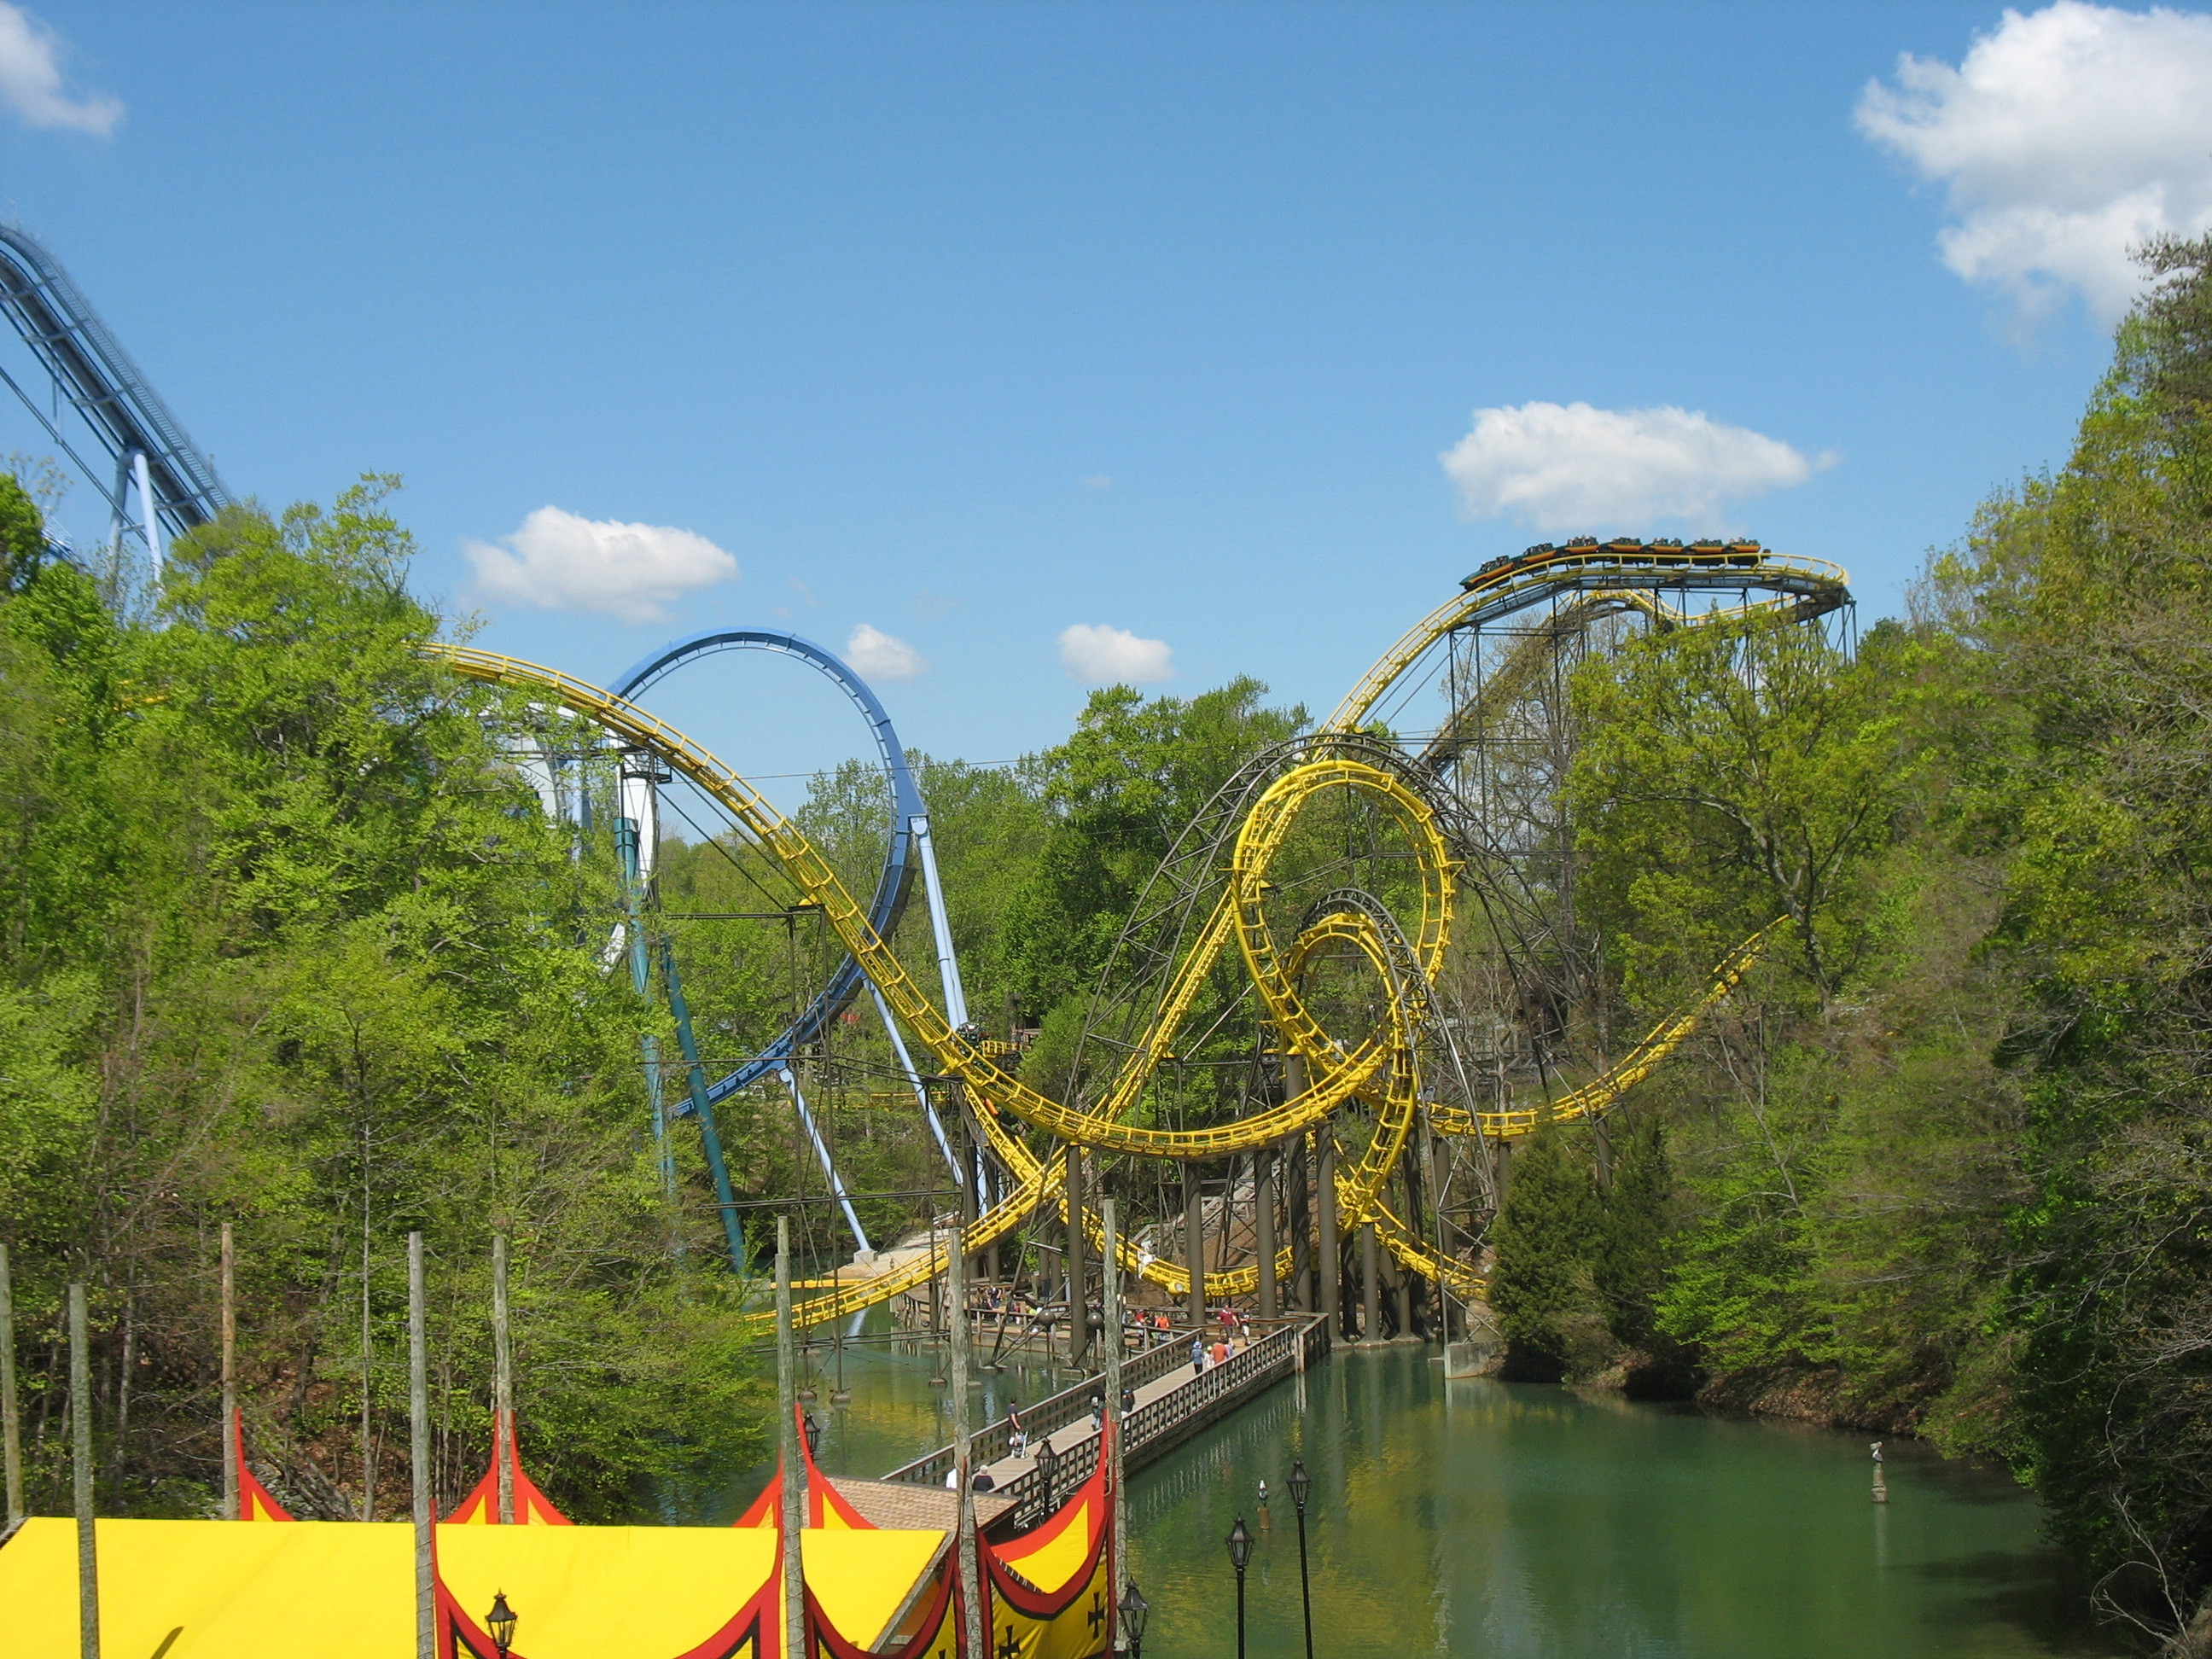 2592x1944 File:Loch Ness Monster (Busch Gardens Europe) 01.jpg